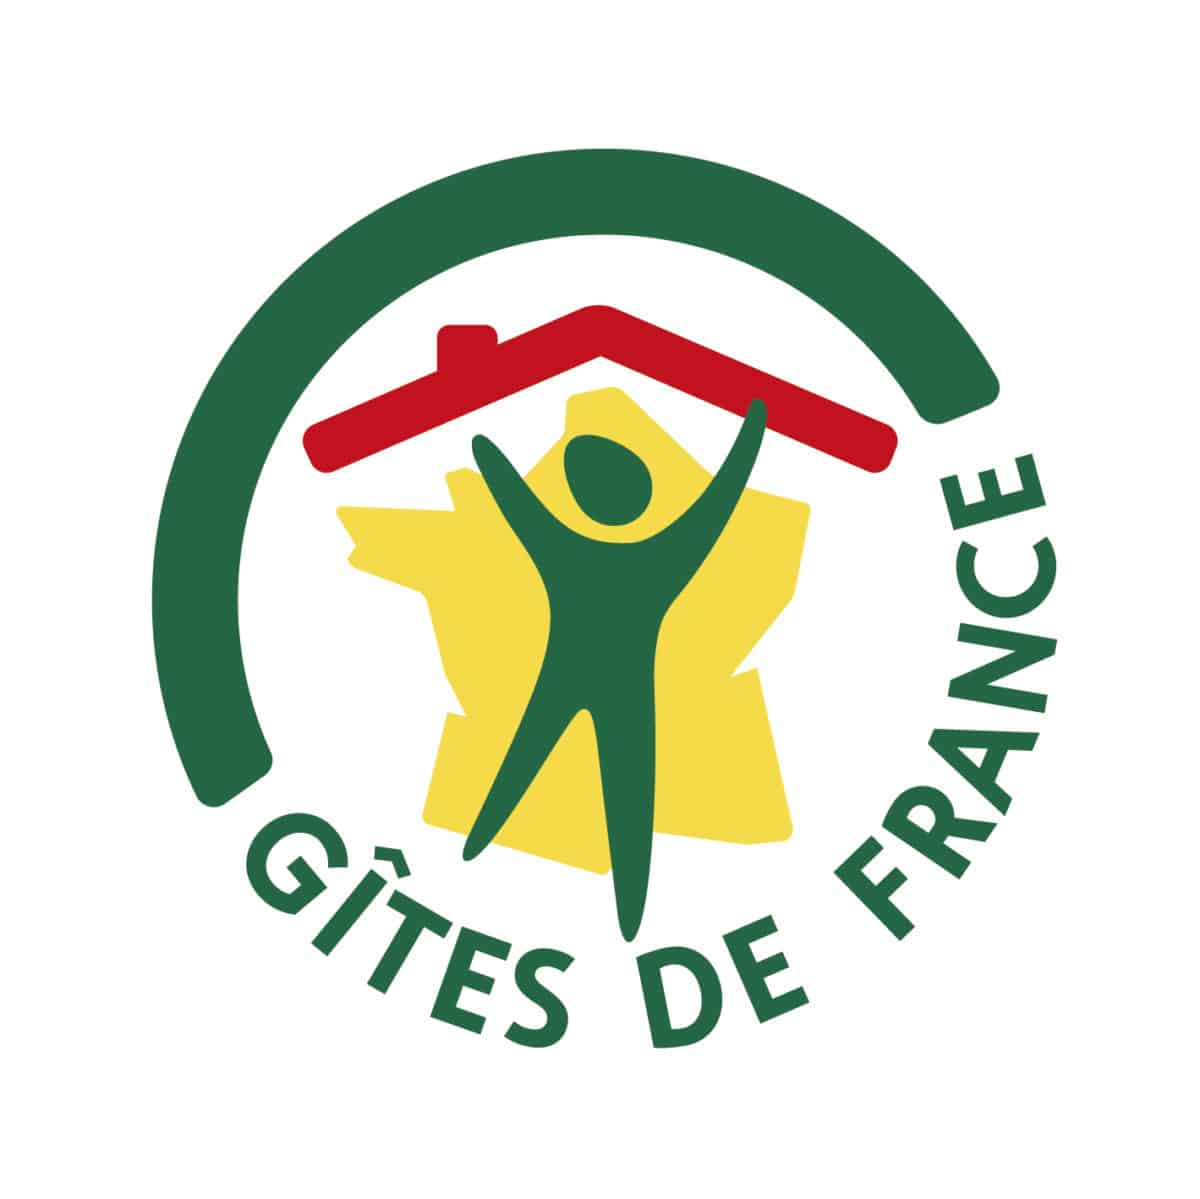 Gîtes de France – Partenariat national